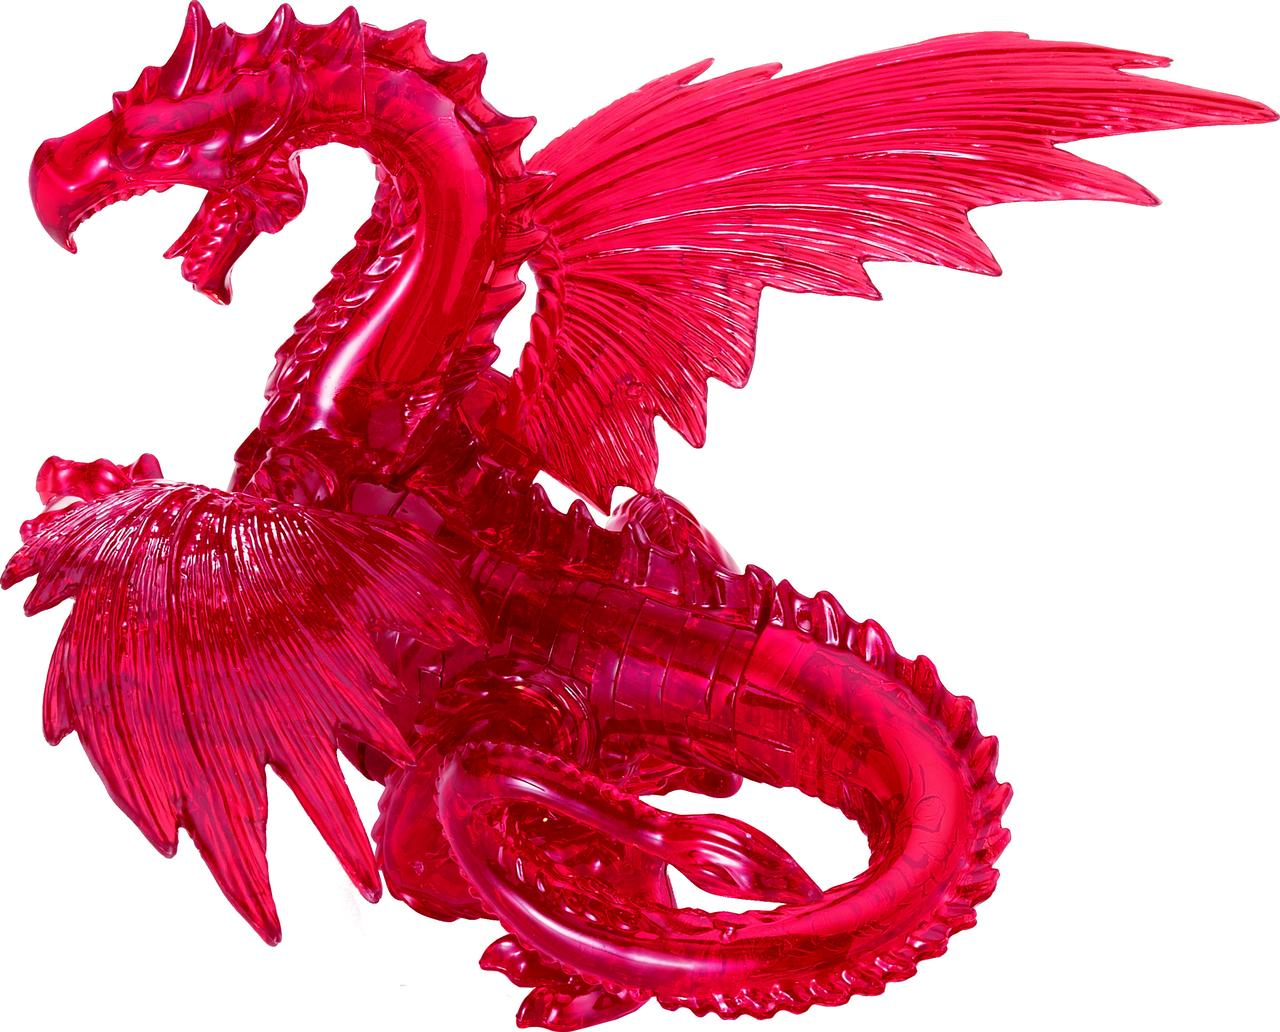 Deluxe 3D Crystal Puzzle Red Dragon by University Games